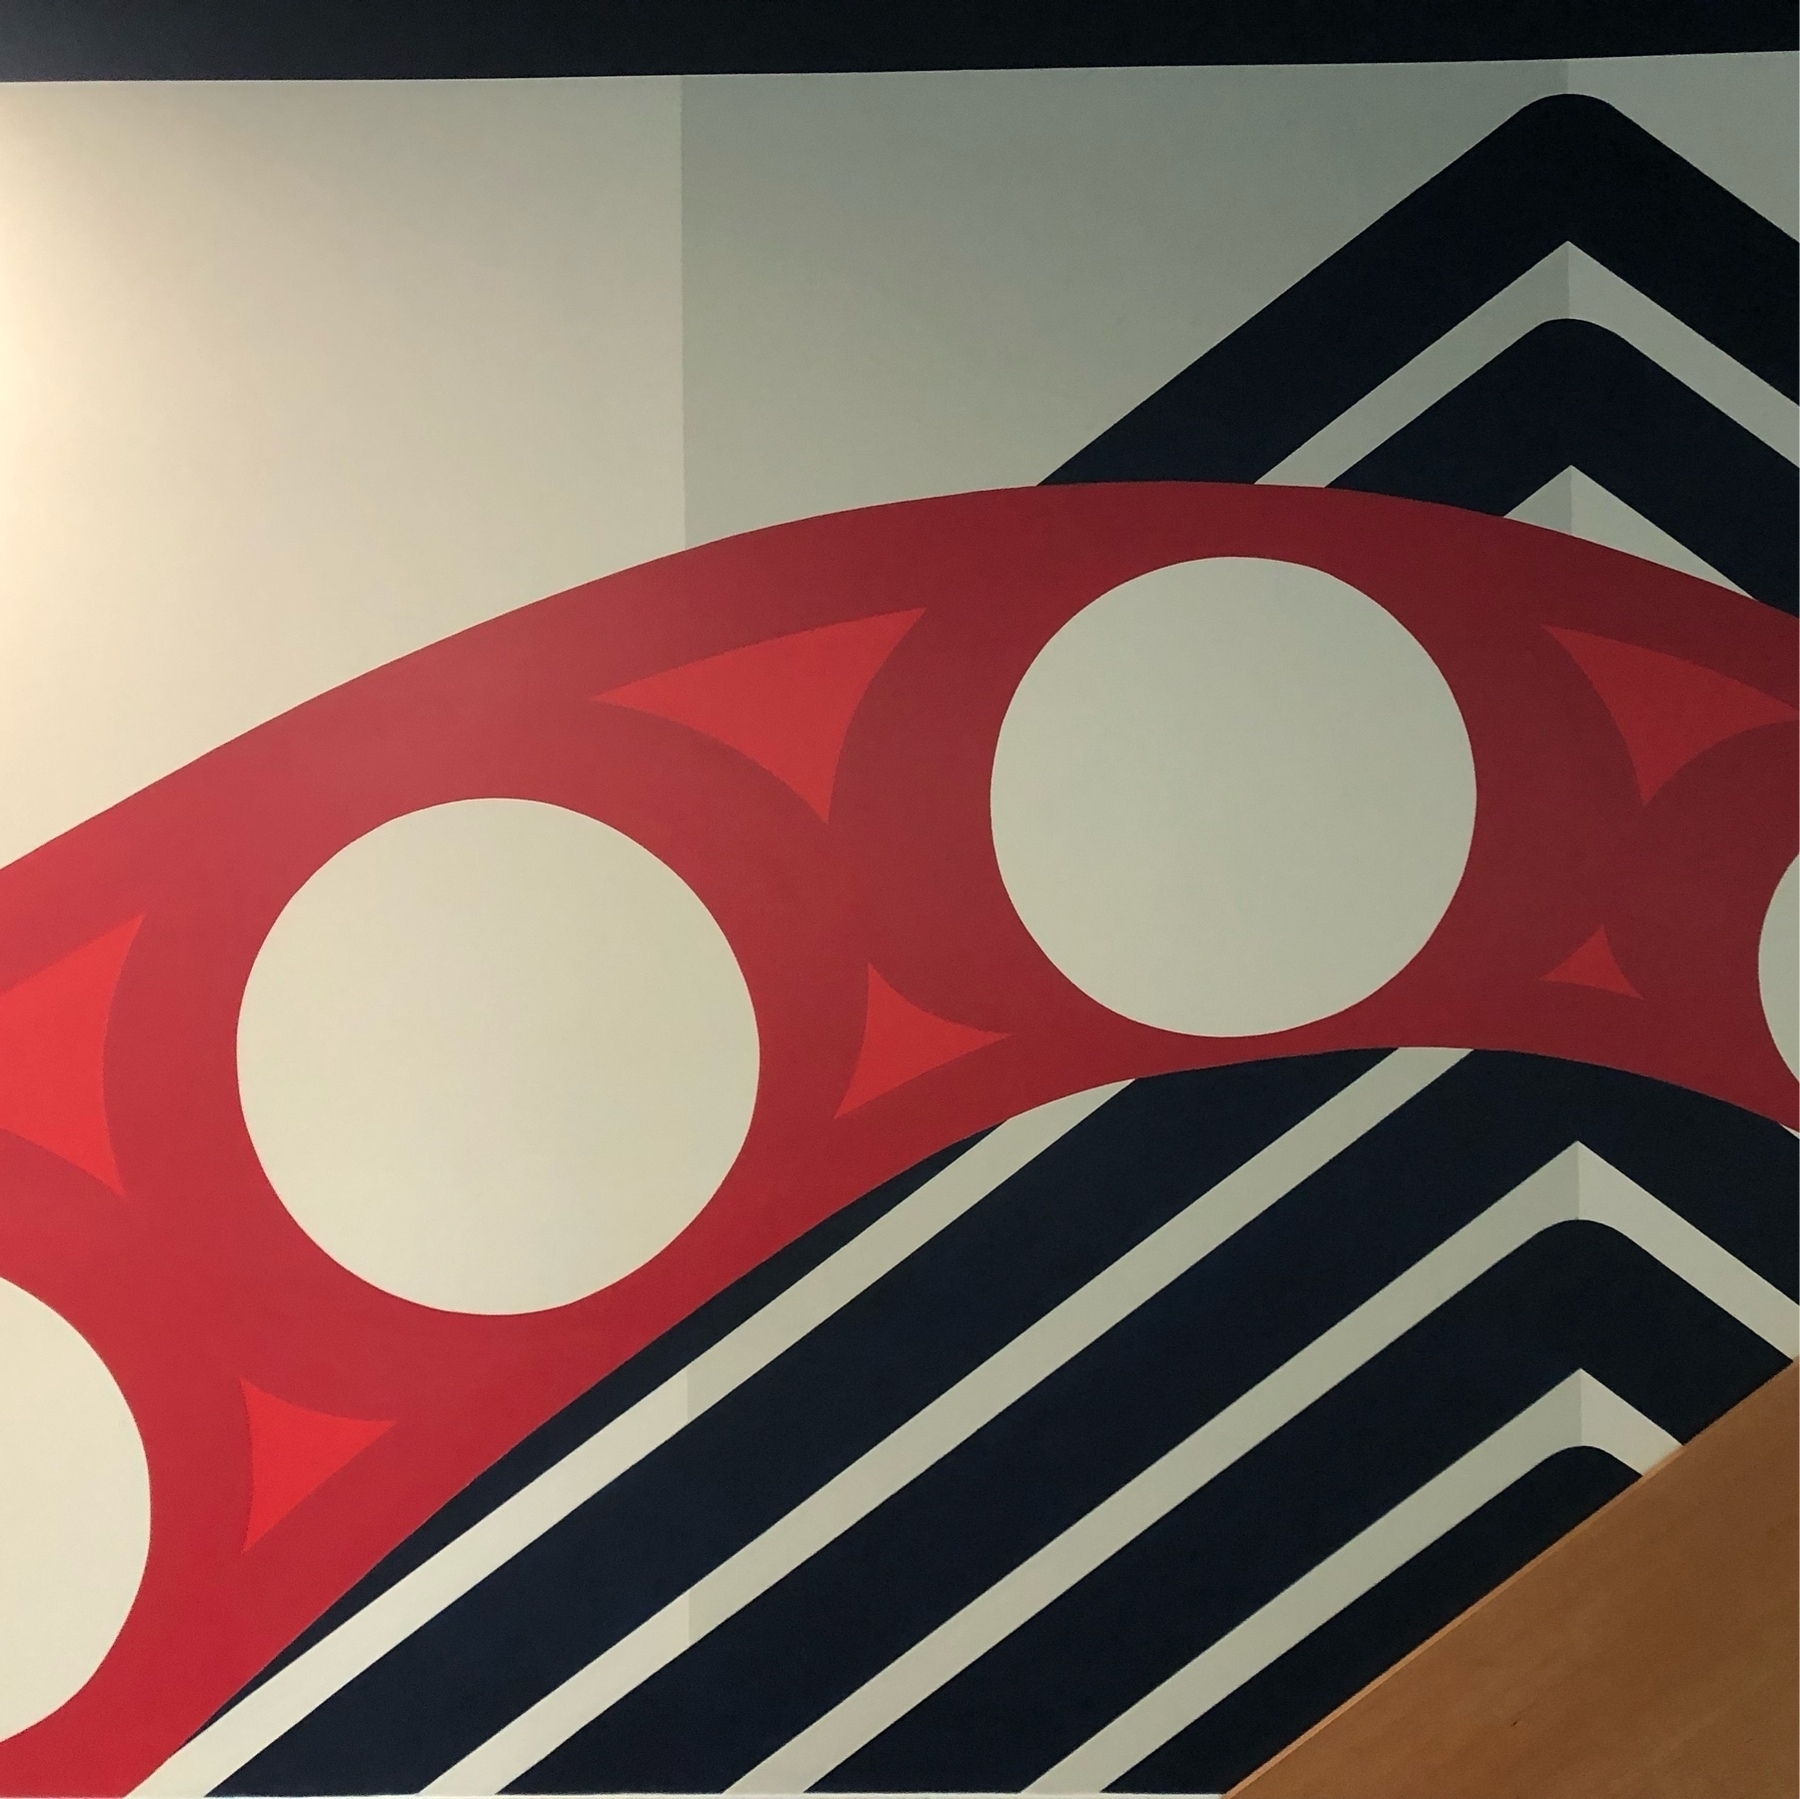 A wall mural showing an modern rendition of a red tentacle